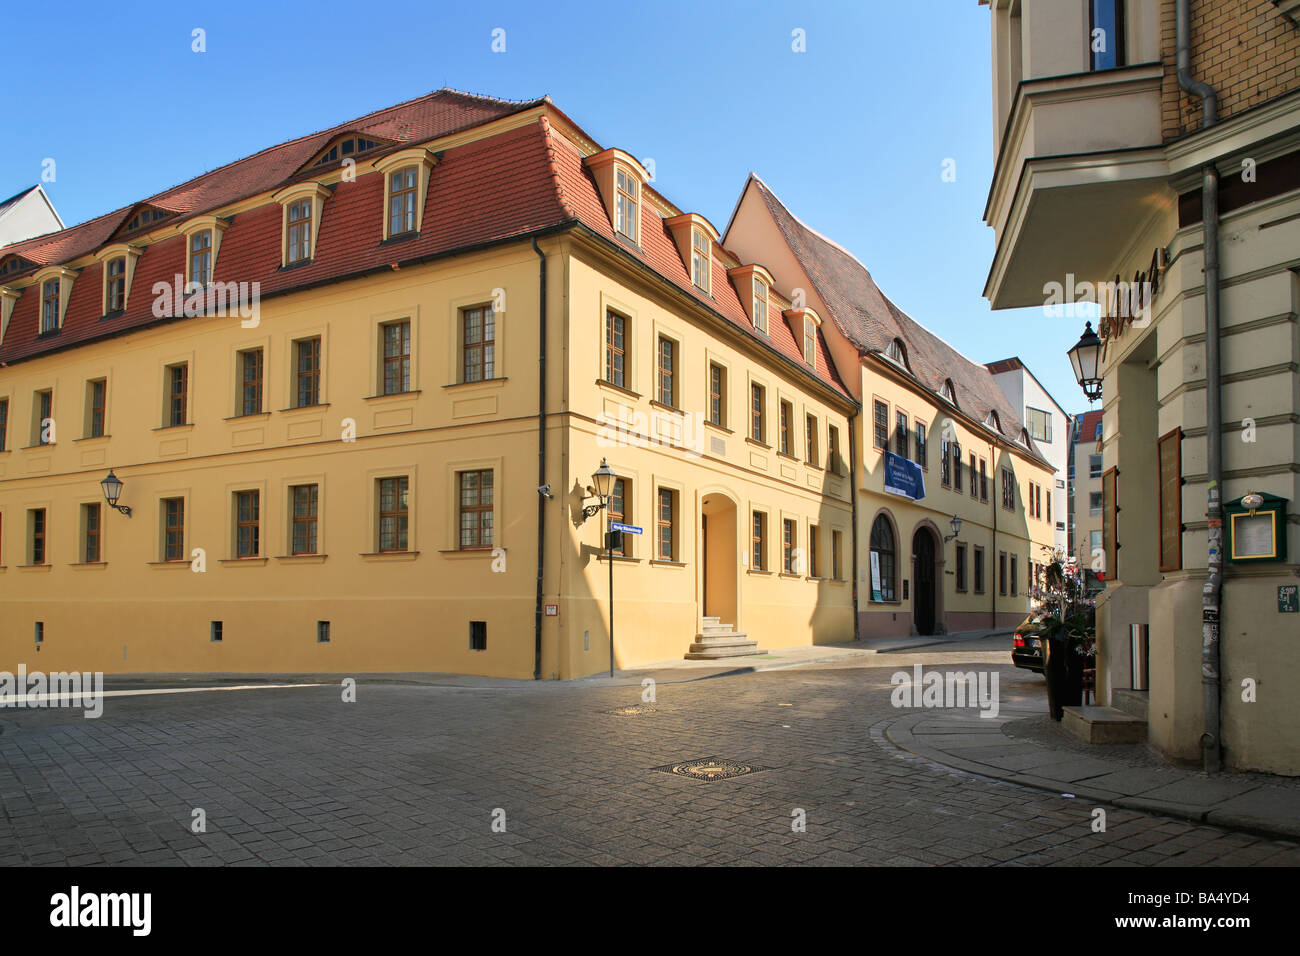 Händel museum and house of Händel's birth in Halle (Saale), Germany - Stock Image